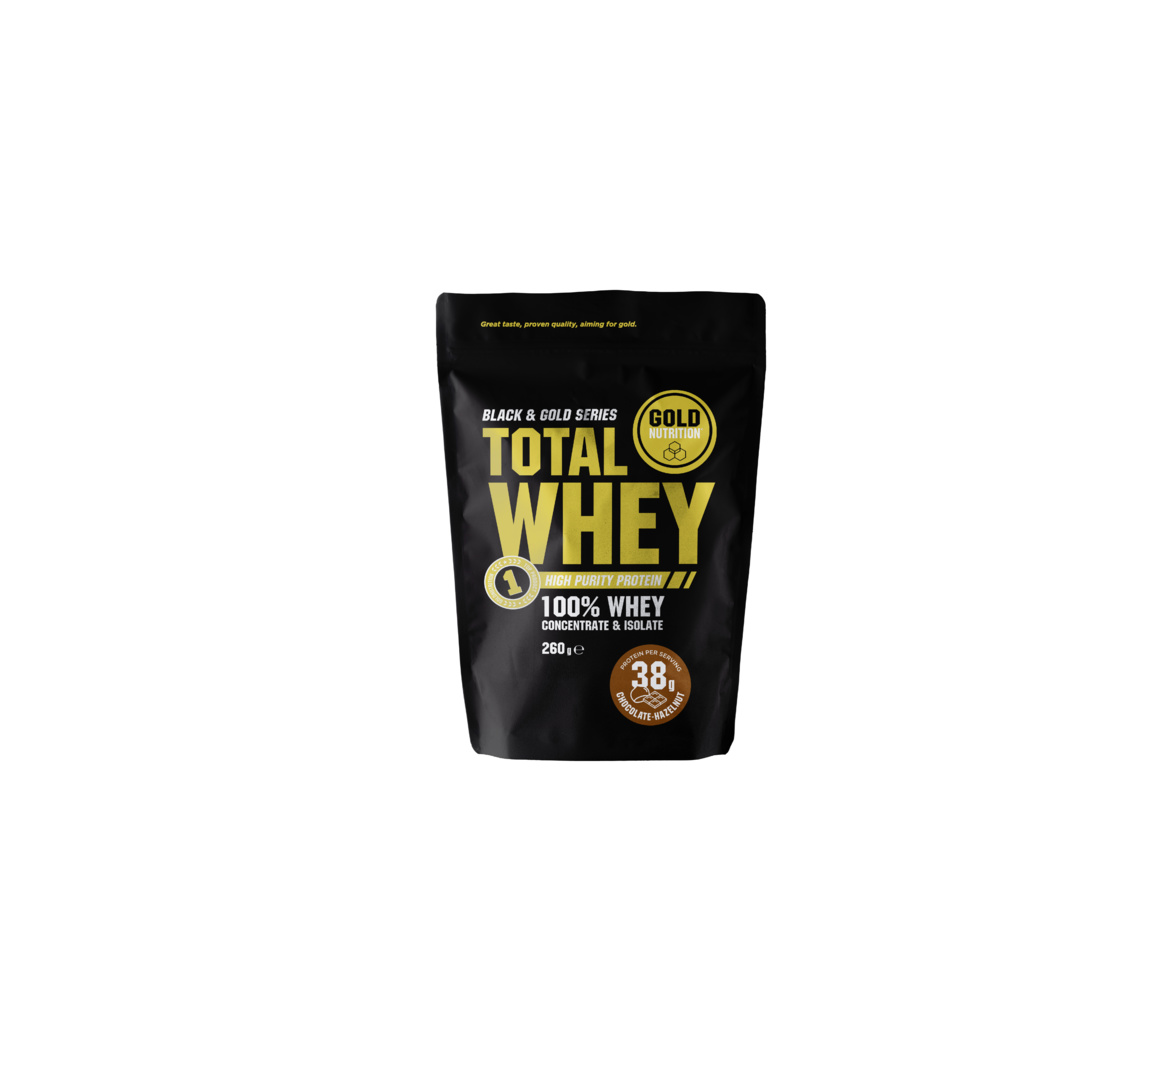 GOLDNUTRITION TOTAL WHEY CIOCOLATA SI ALUNE 260GR